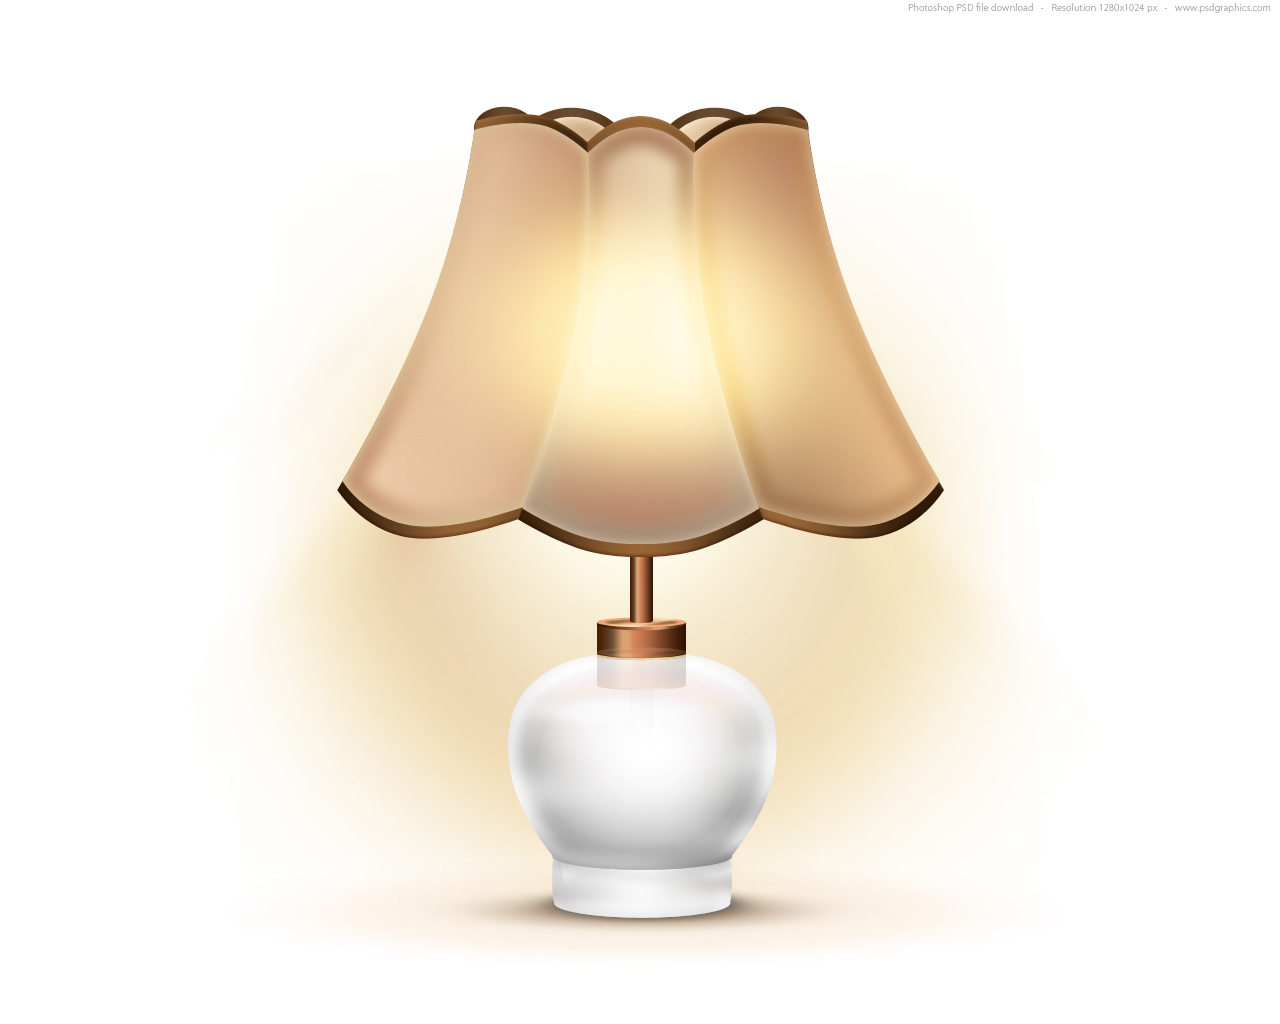 Old Table Lamp Icon Psd Psdgraphics Wire Diagram Full Size Preview